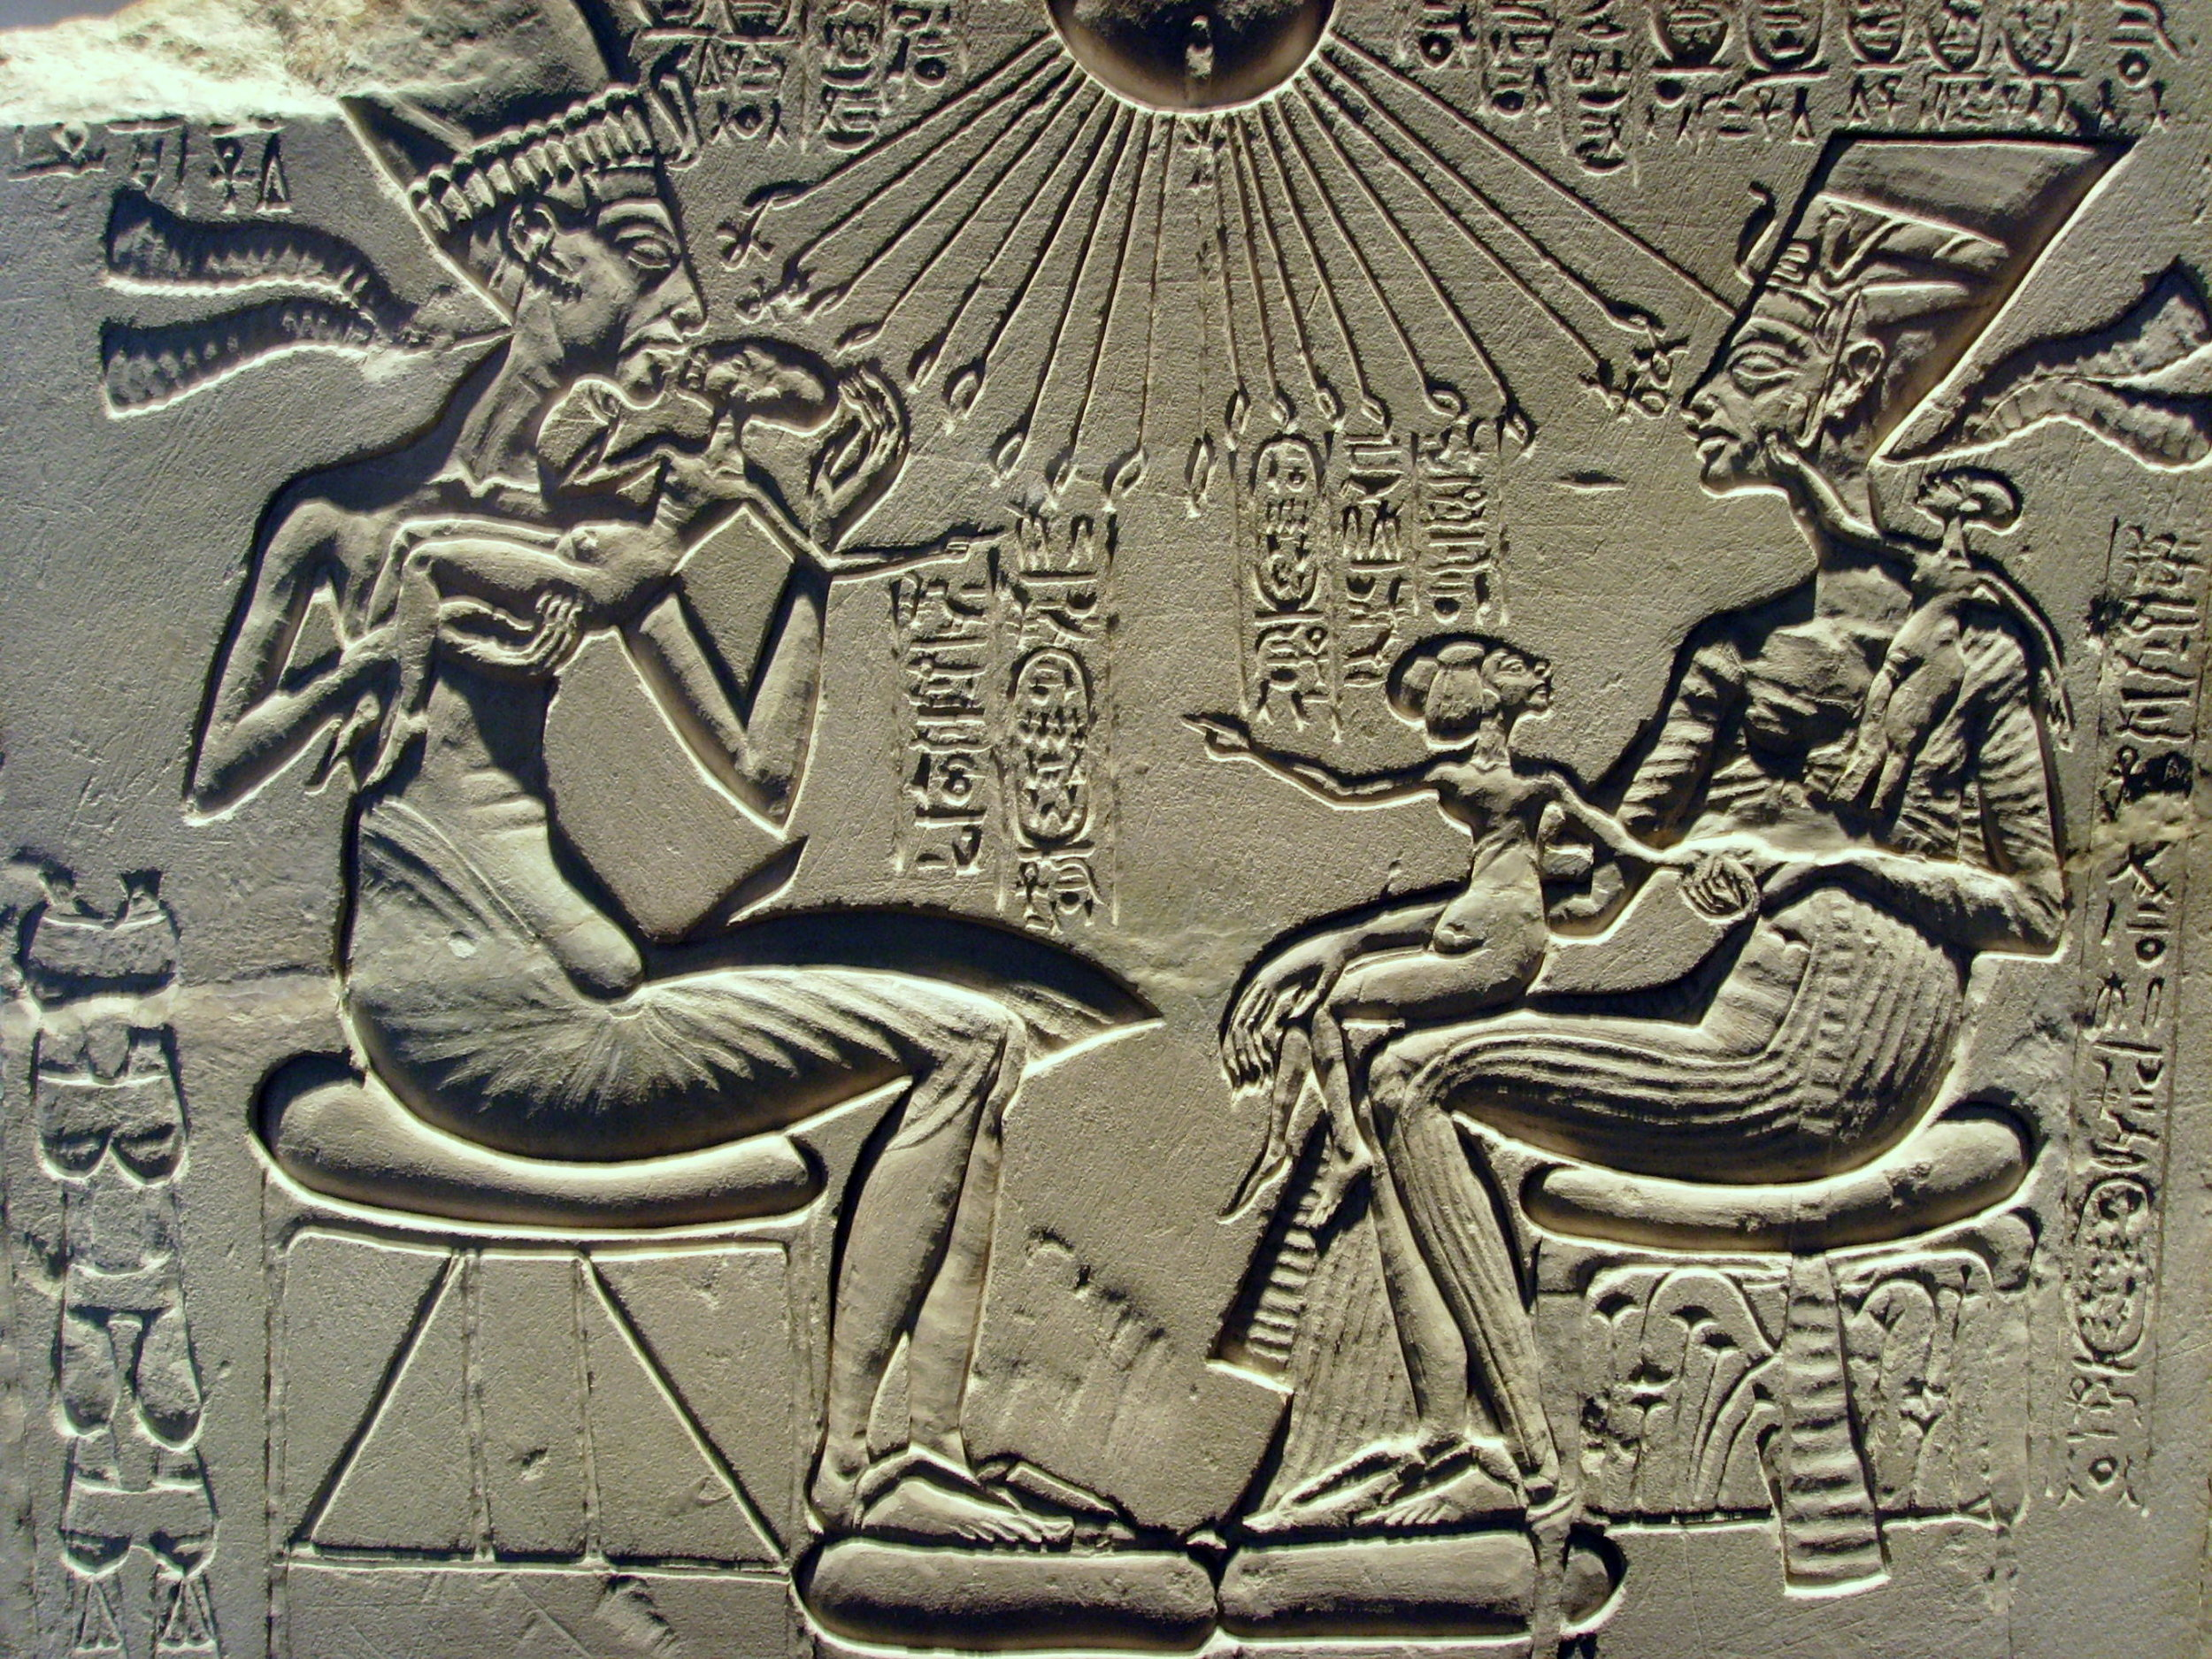 Akhenaten and Nefertiti with three of their daughters. Fluid depictions like this were unprecedented in Egyptian history.